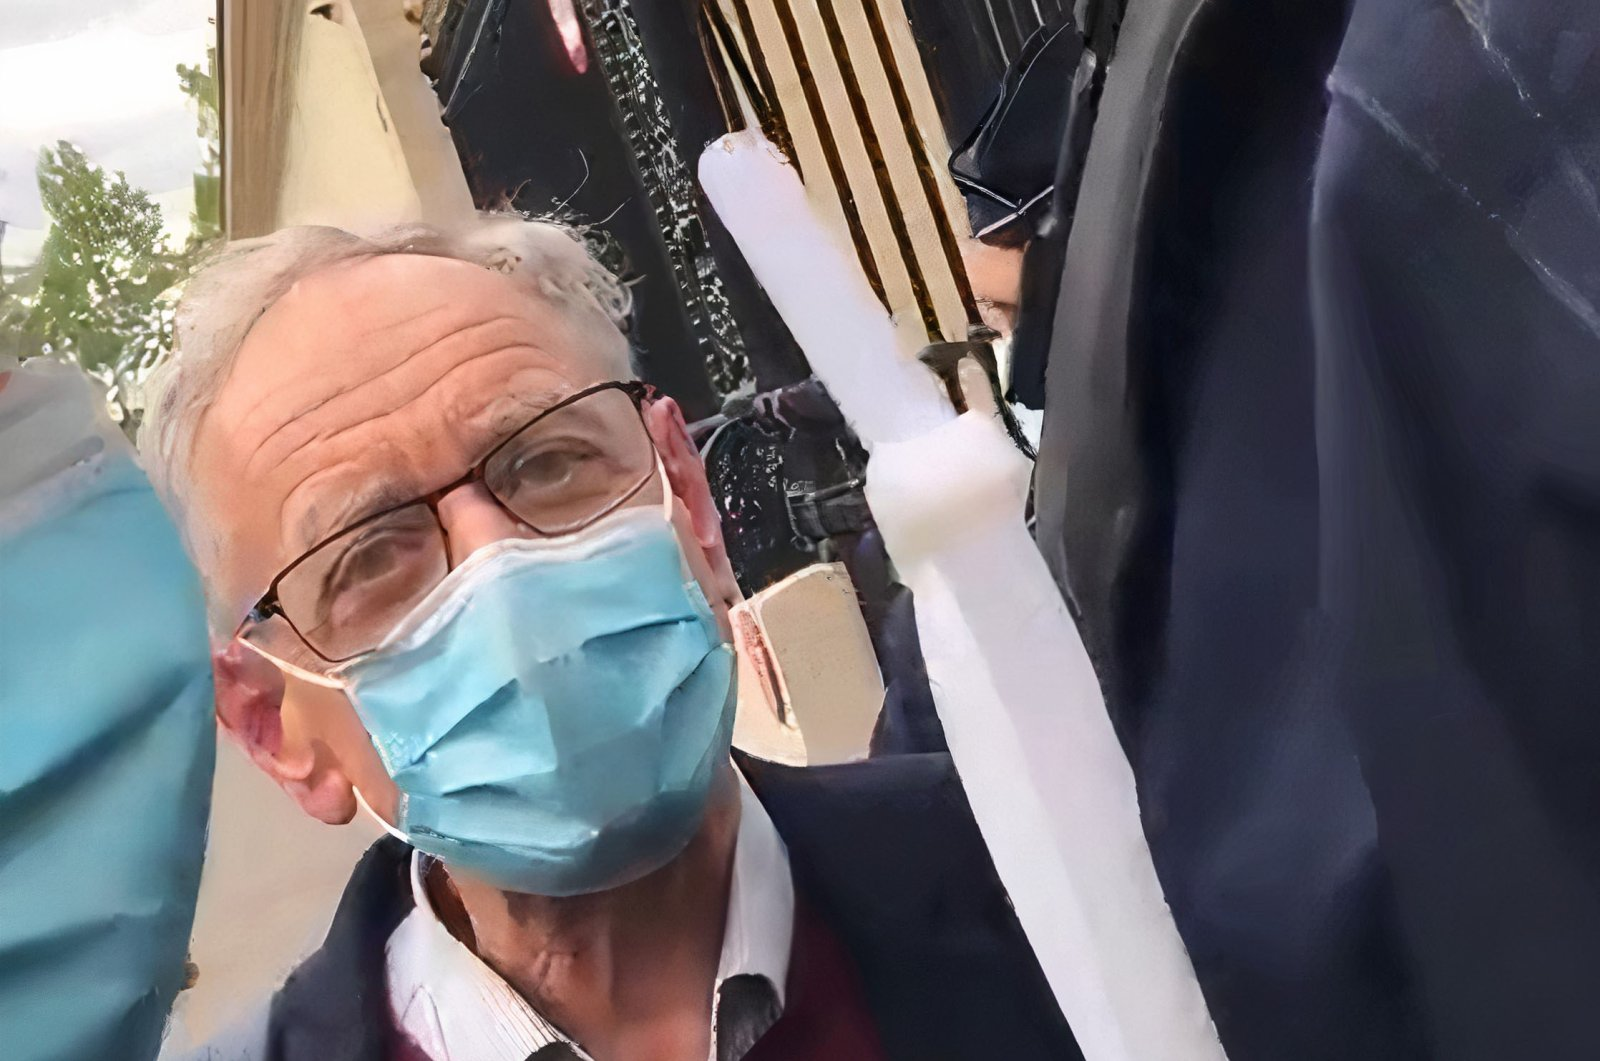 President of L'Association France Palestine Solidarité Bertrand Heilbronn pictured during his arrest outside the French Foreign Ministry, Paris, France, May 12, 2021. (Twitter @AFPSOfficiel)